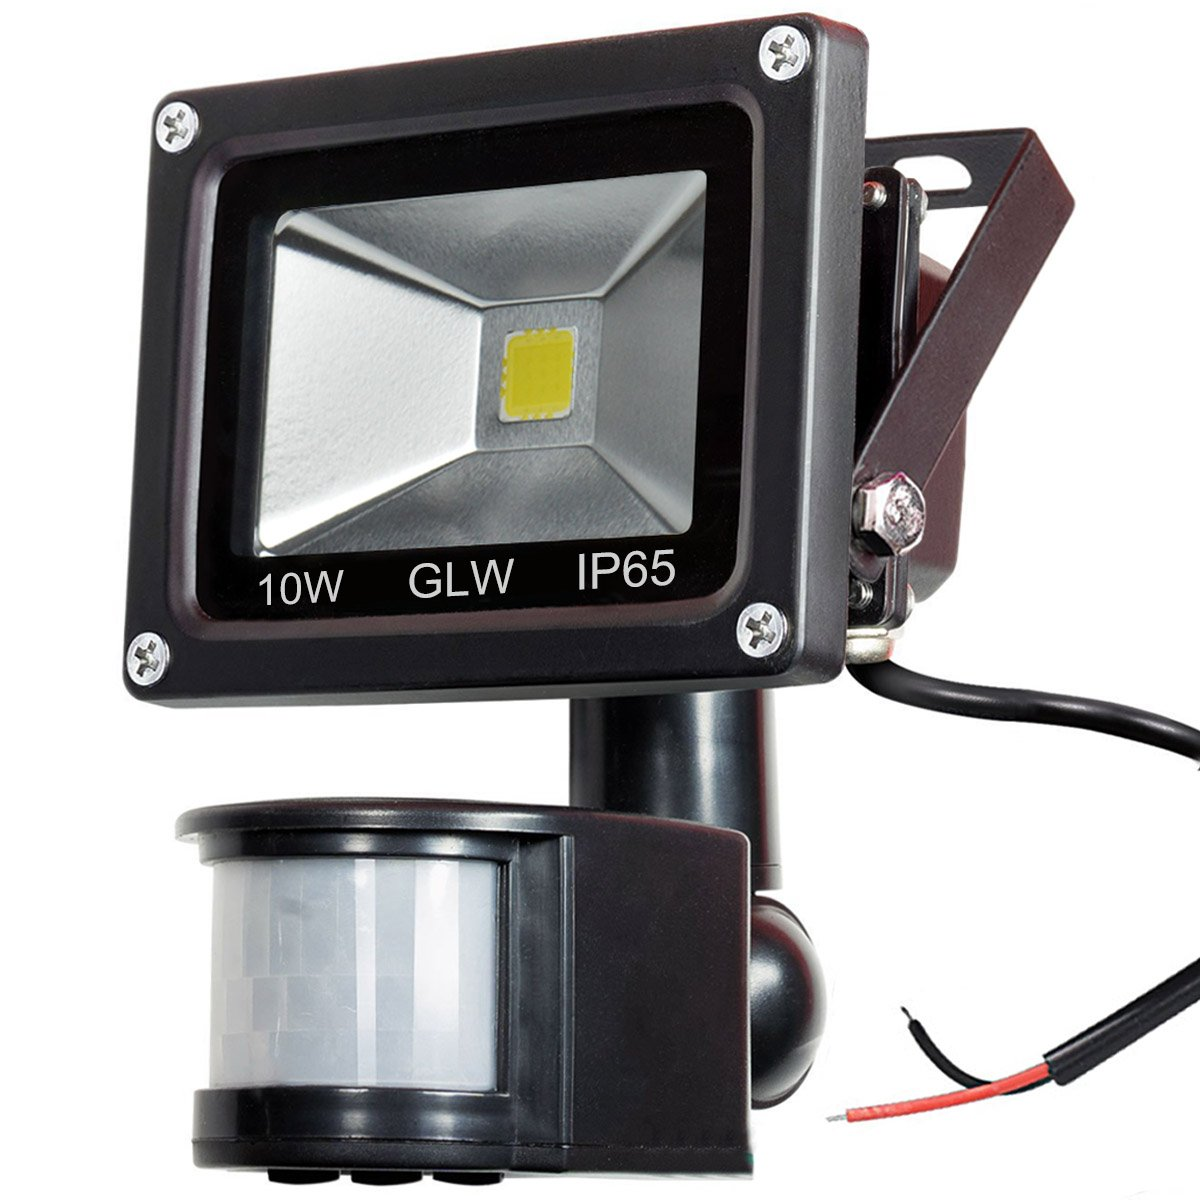 GLW Waterproof Daylight Security Equivalent